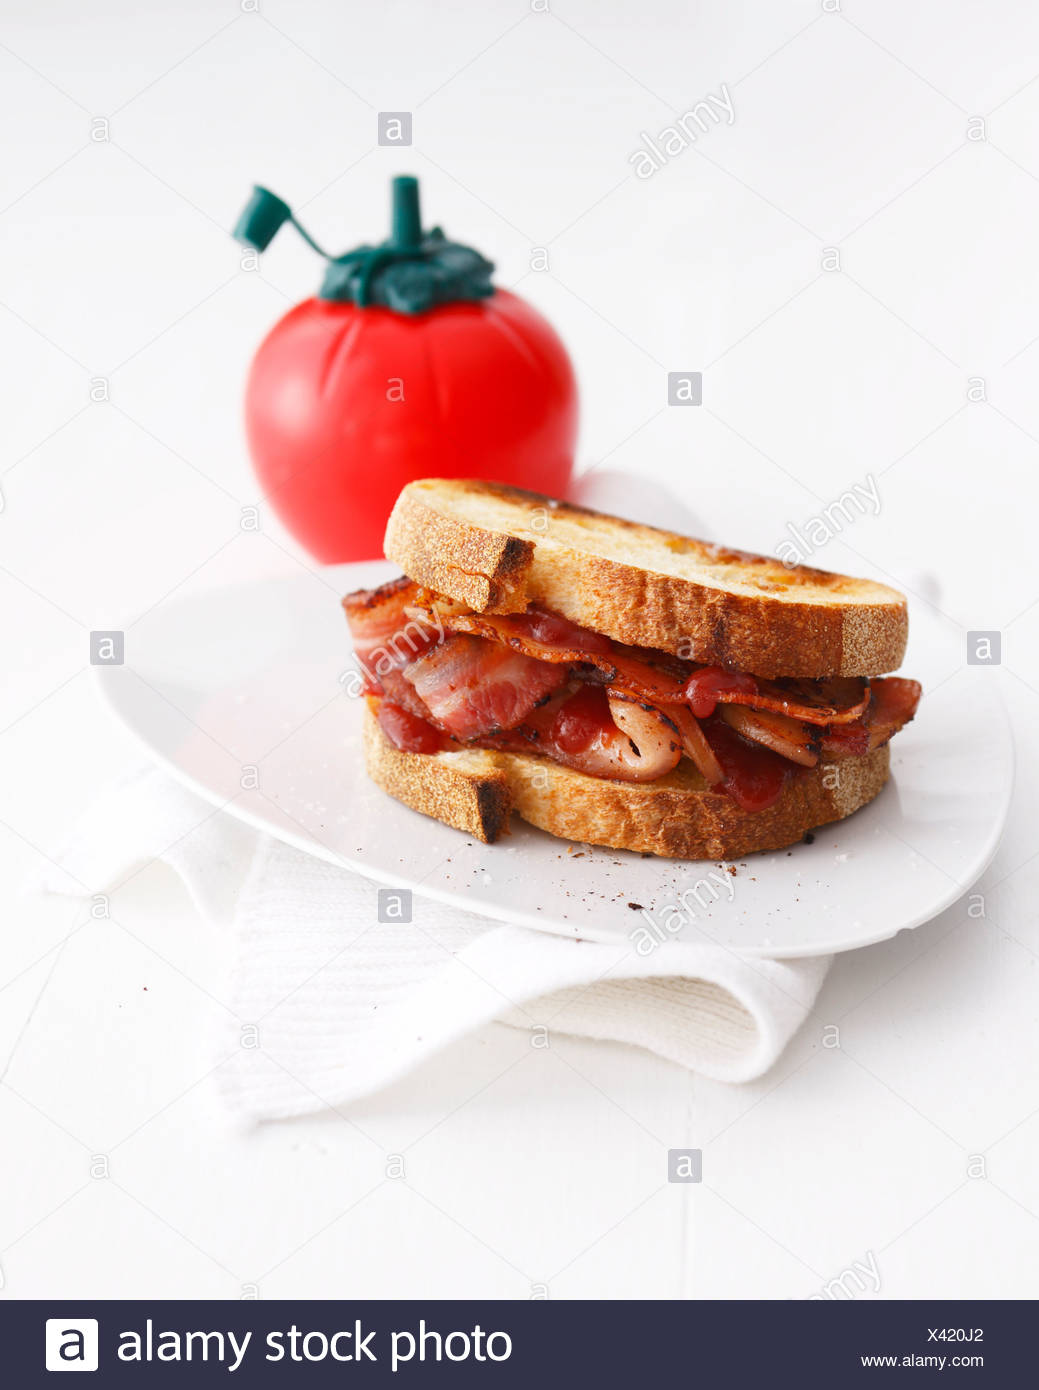 Bacon sandwich with tomato ketchup - Stock Image